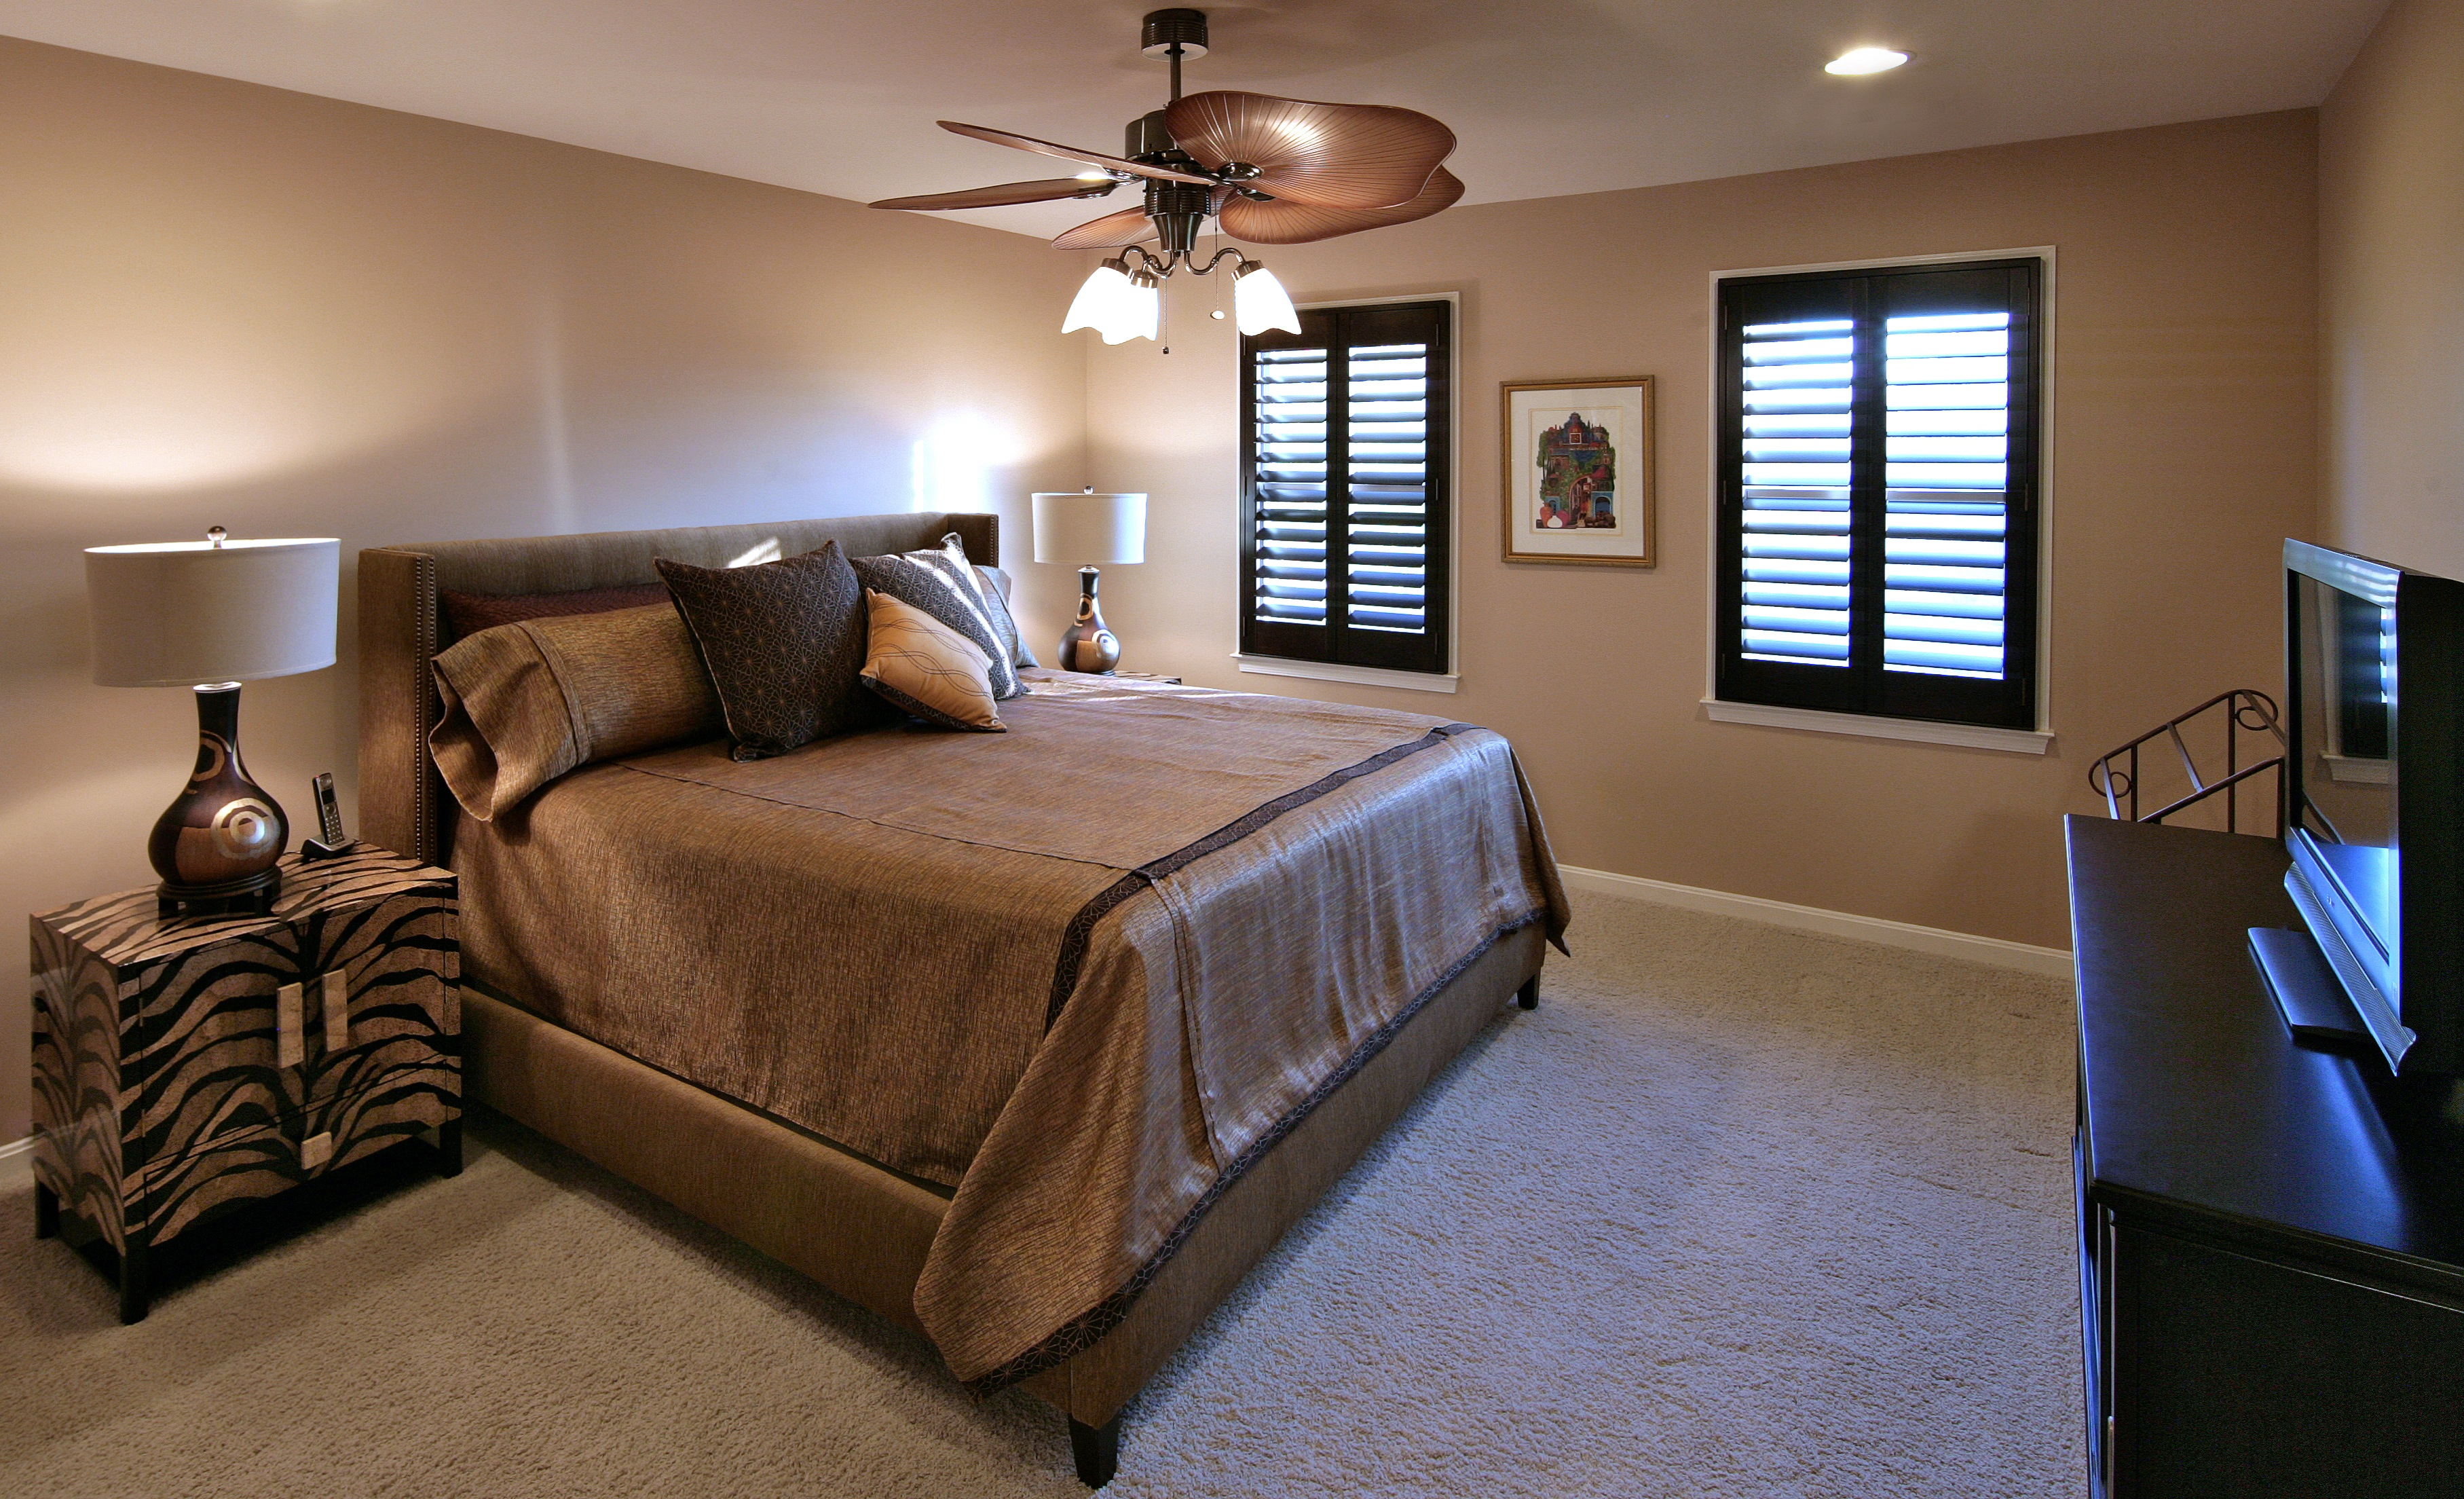 bethesda maryland master suite remodeling 12324 | master bedroom1